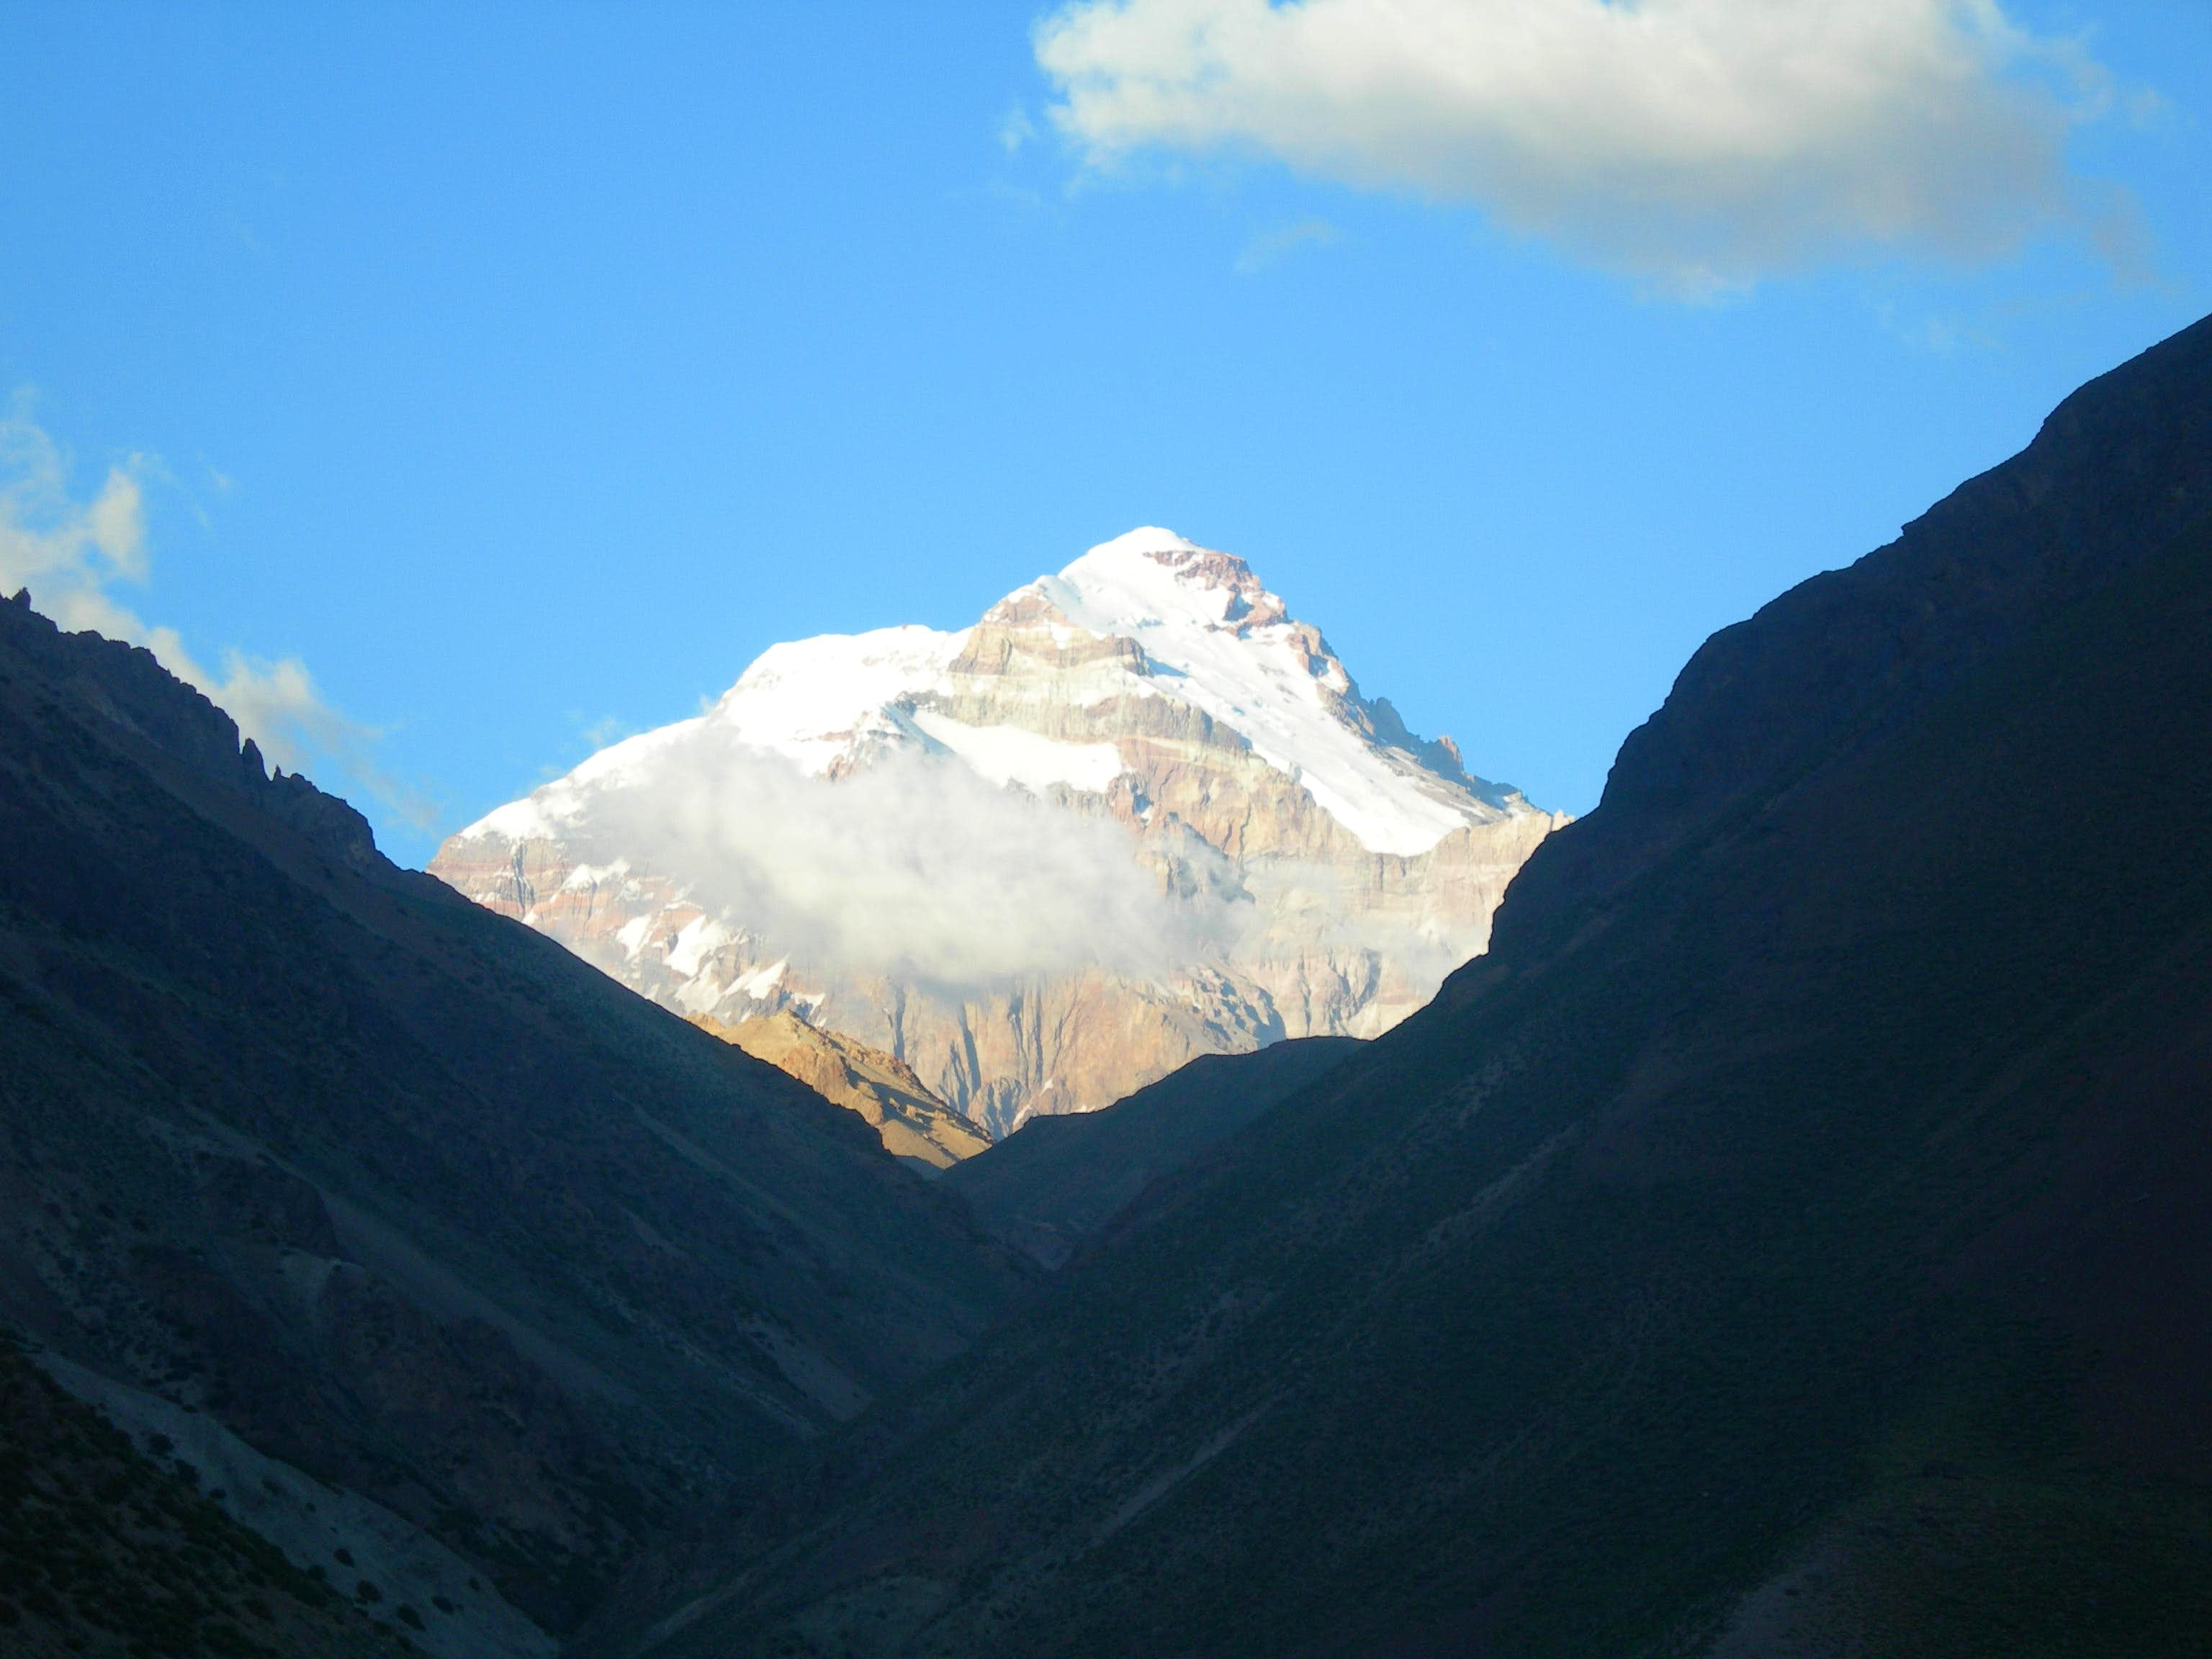 CSU expedition to Cerro Aconcagua